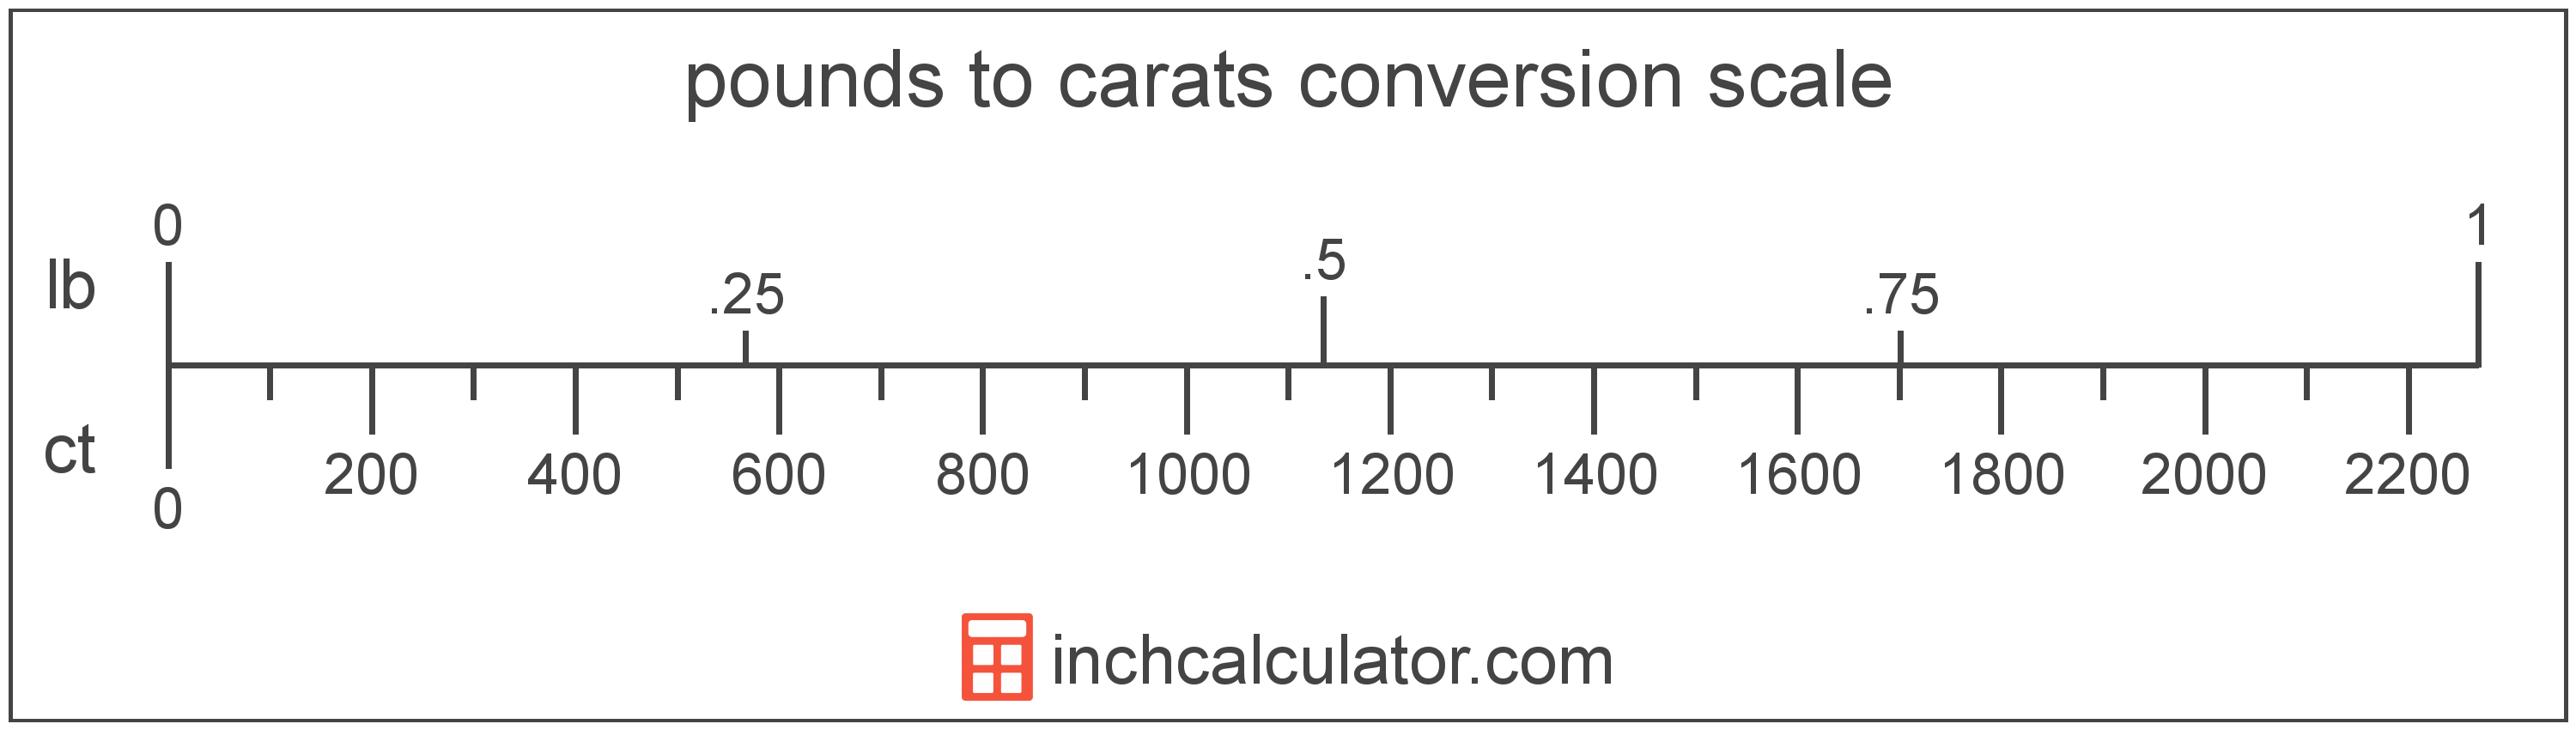 conversion scale showing pounds and equivalent carats weight values